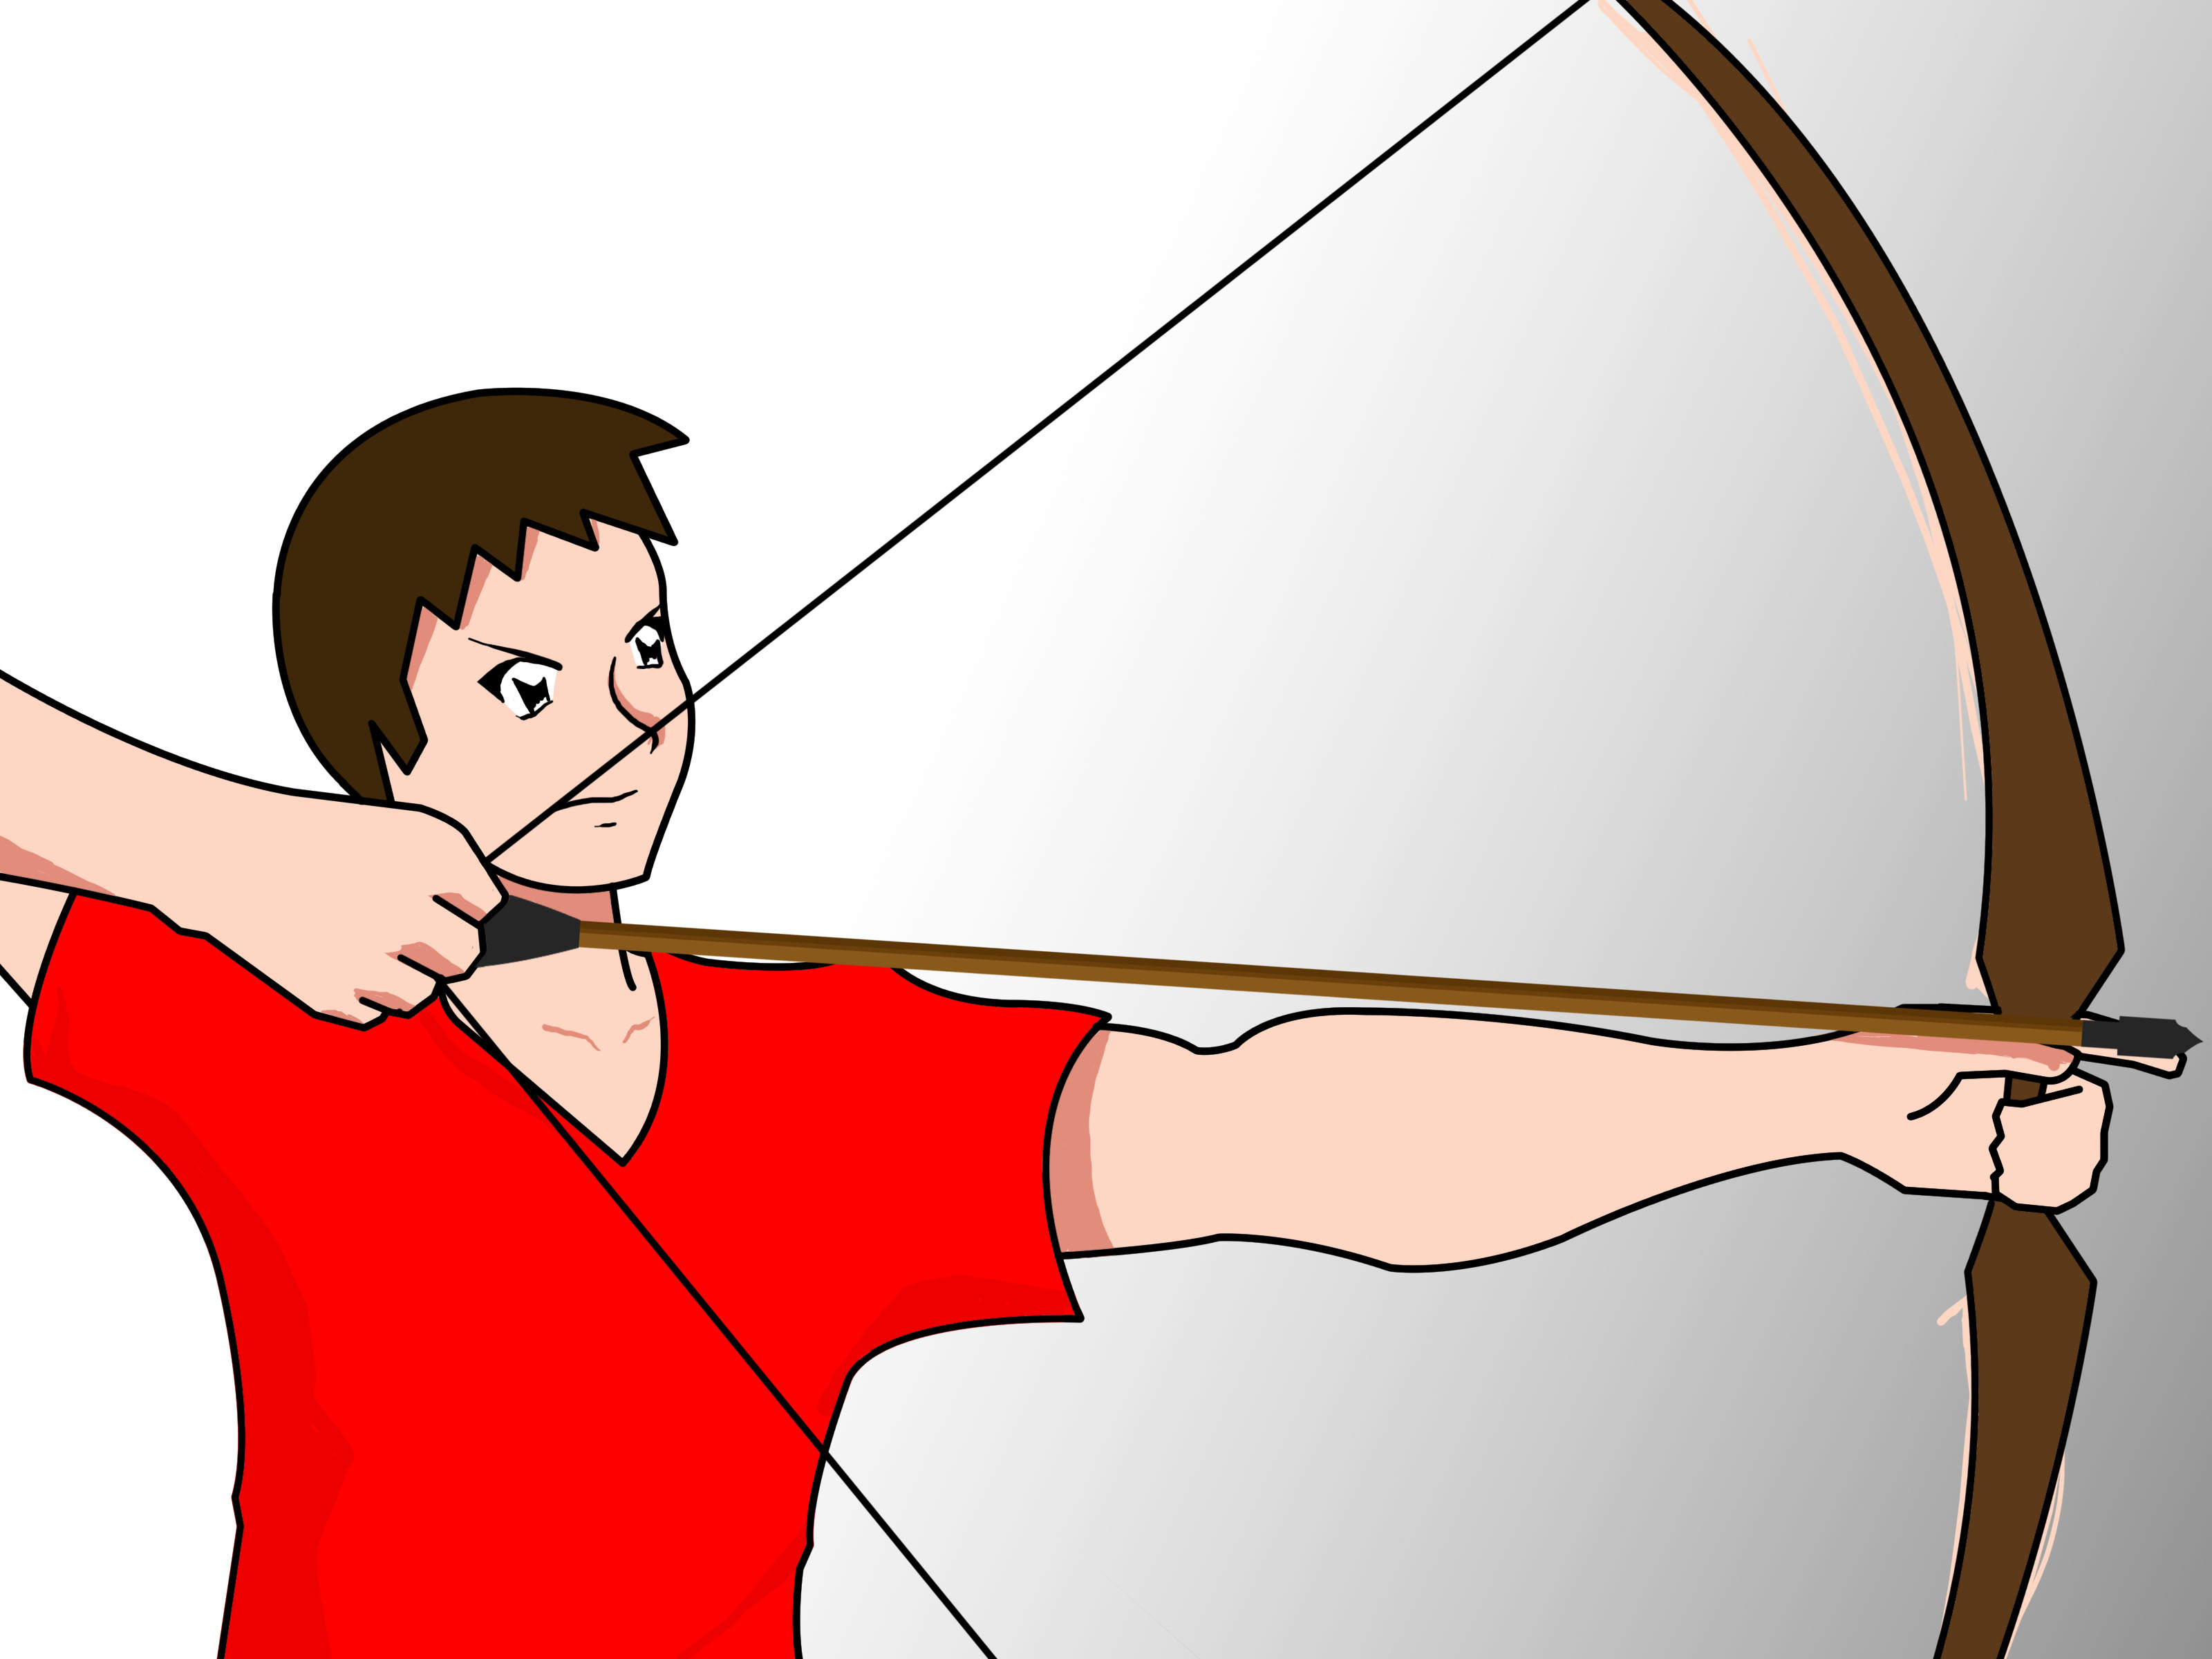 3200x2400 How To Shoot A Bow Accurately 4 Steps (With Pictures)